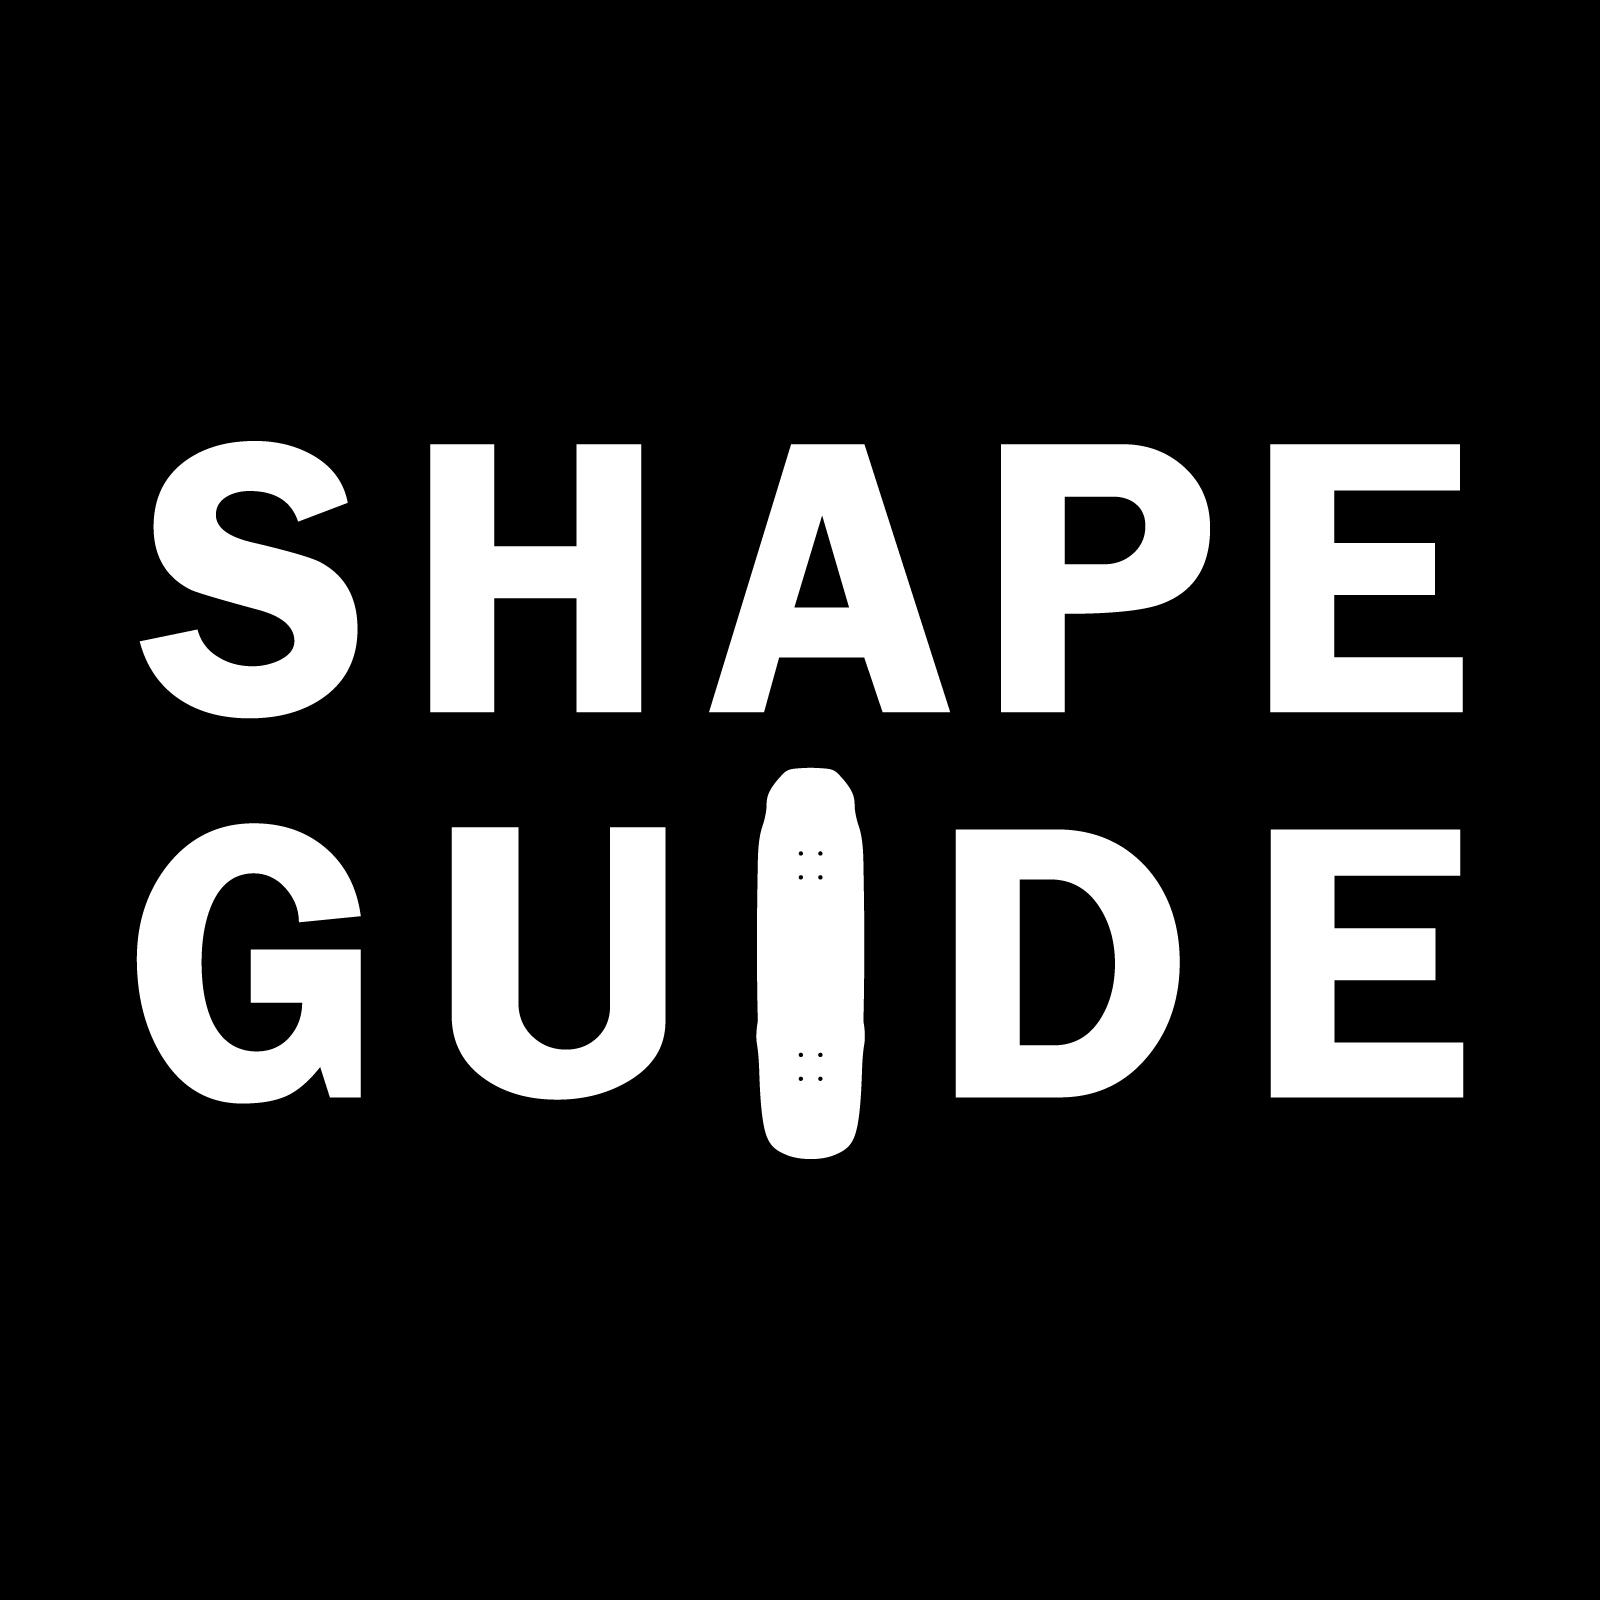 SHAPE-GUIDE.jpg